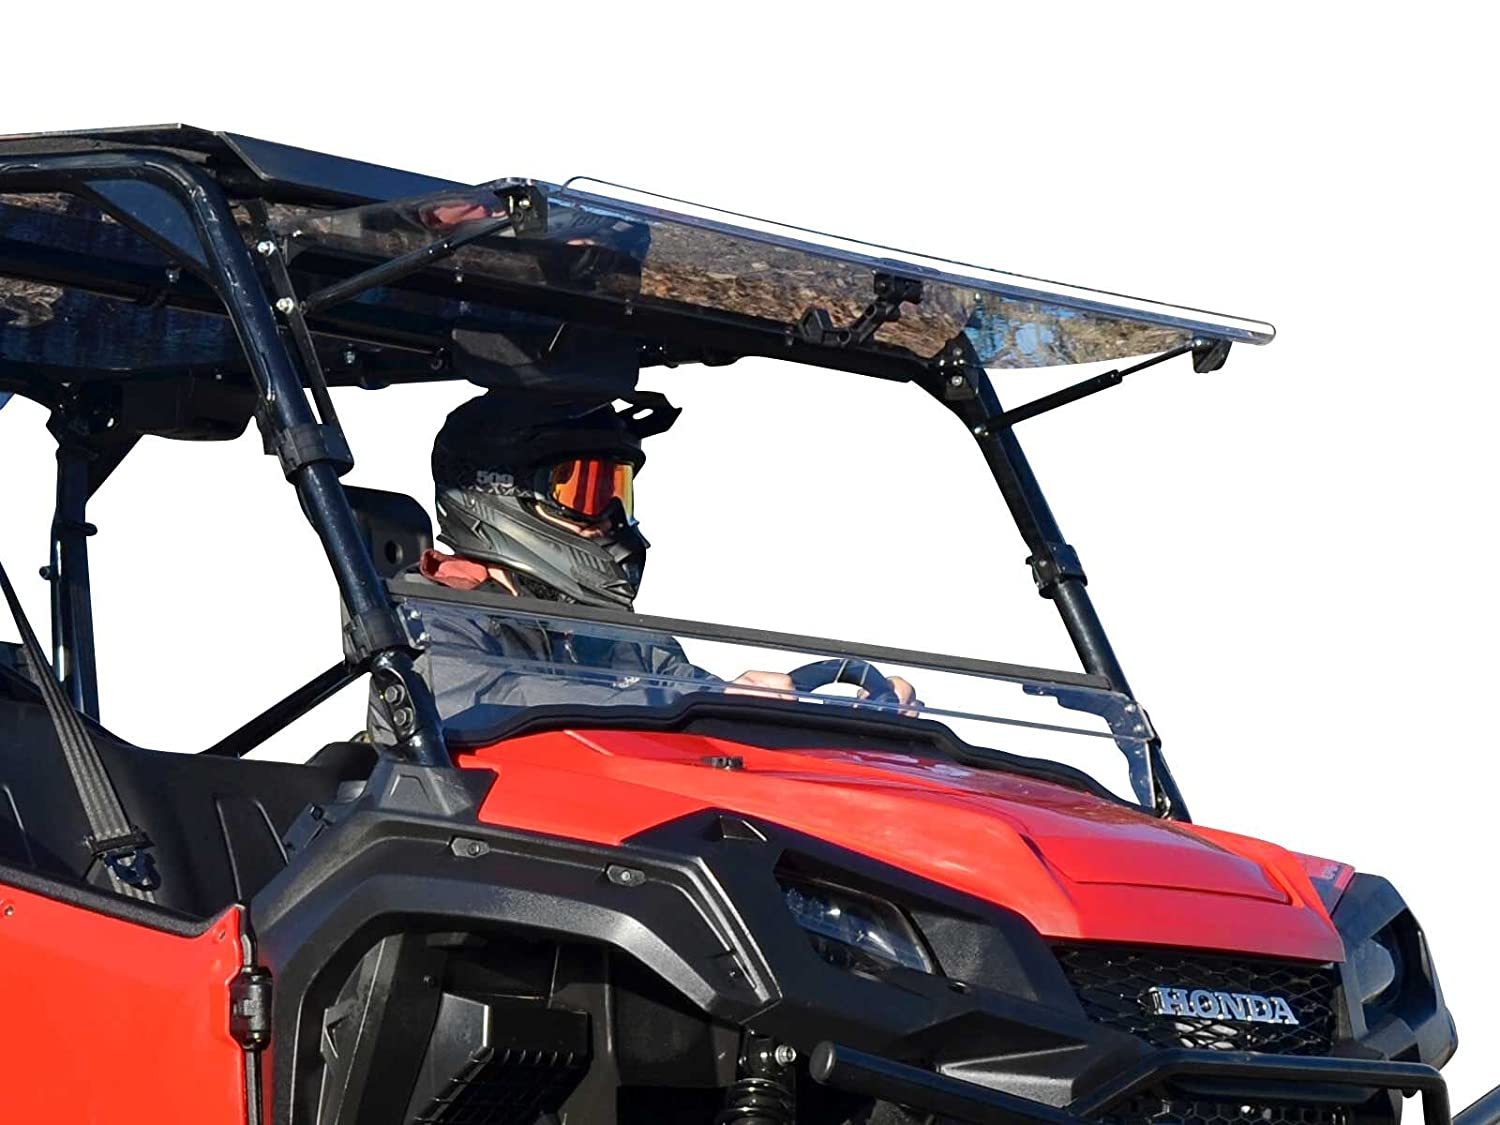 Honda Pioneer Reviews >> Superatv Scratch Resistant Clear Flip Windshield For Honda Pioneer 1000 1000 5 2016 Hard Coated For Extreme Durability Can Be Set To 3